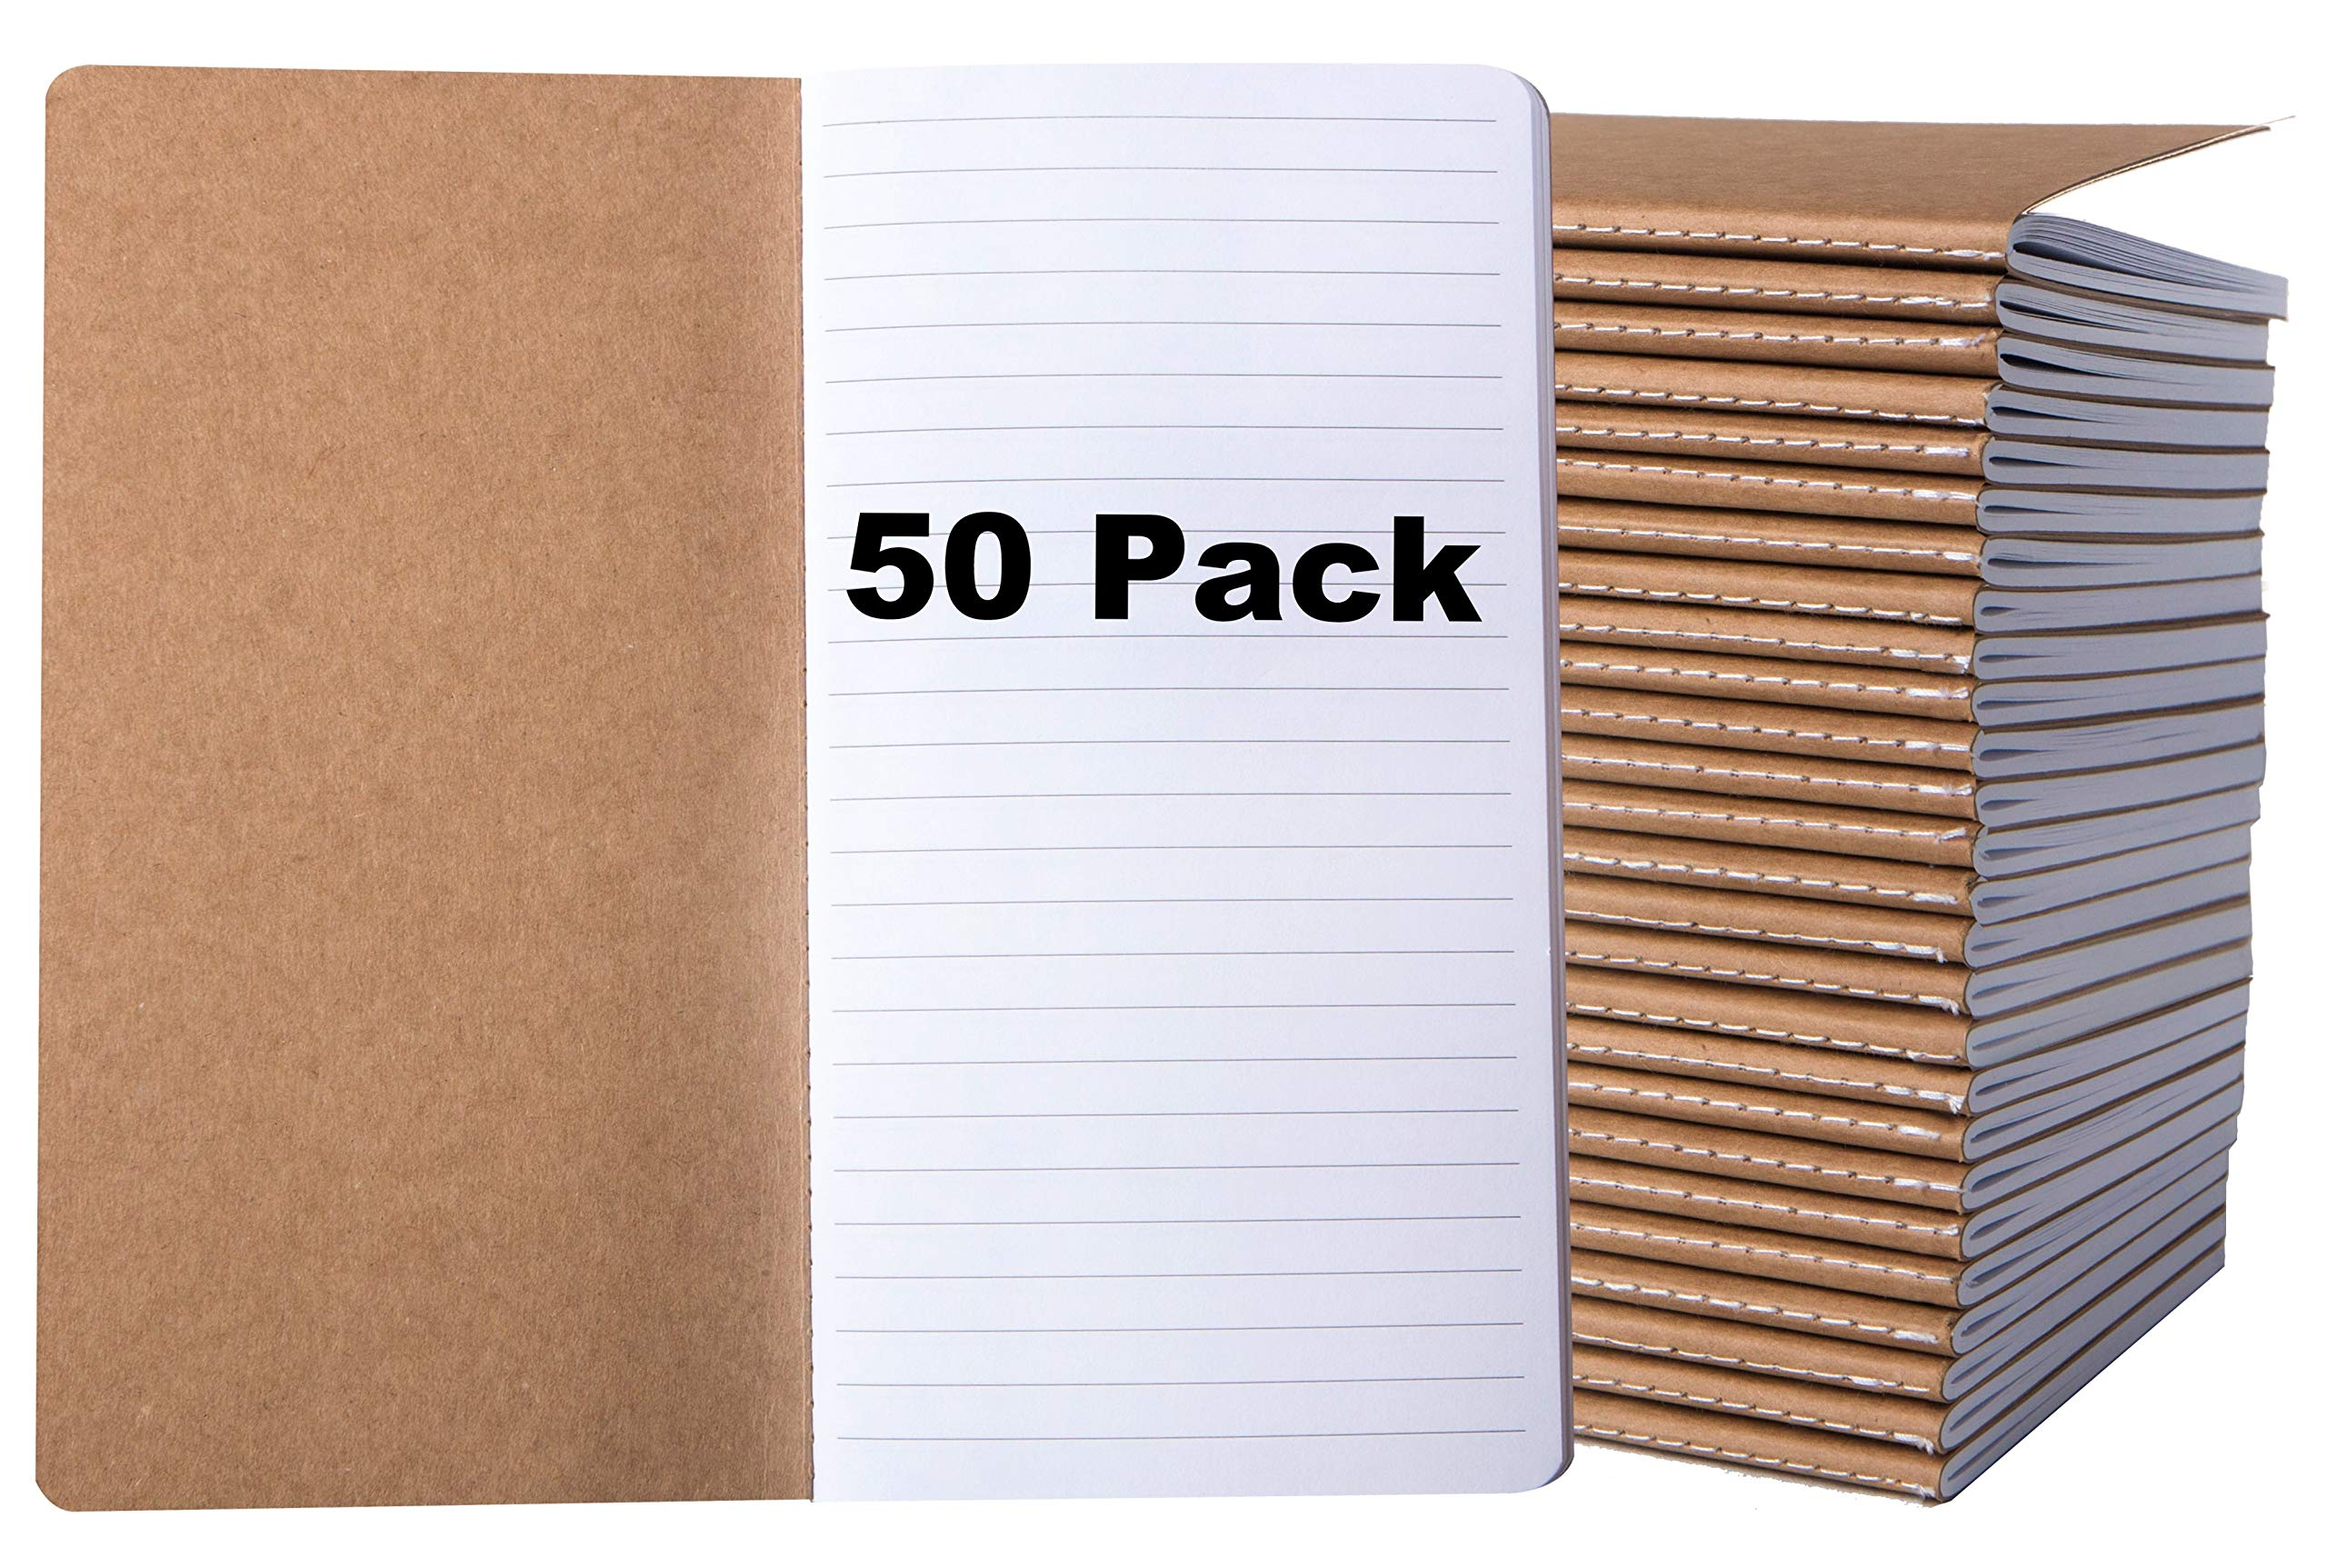 50 Pack Journal Notebook - Pocket Journals Bulk - Bulk Kraft Notebooks - Lined Notebook - Small Writing Notebooks, H5 Notebook - 80 Pages - 4.4 x 8.26 Inches - Brown by Bargain Paradise